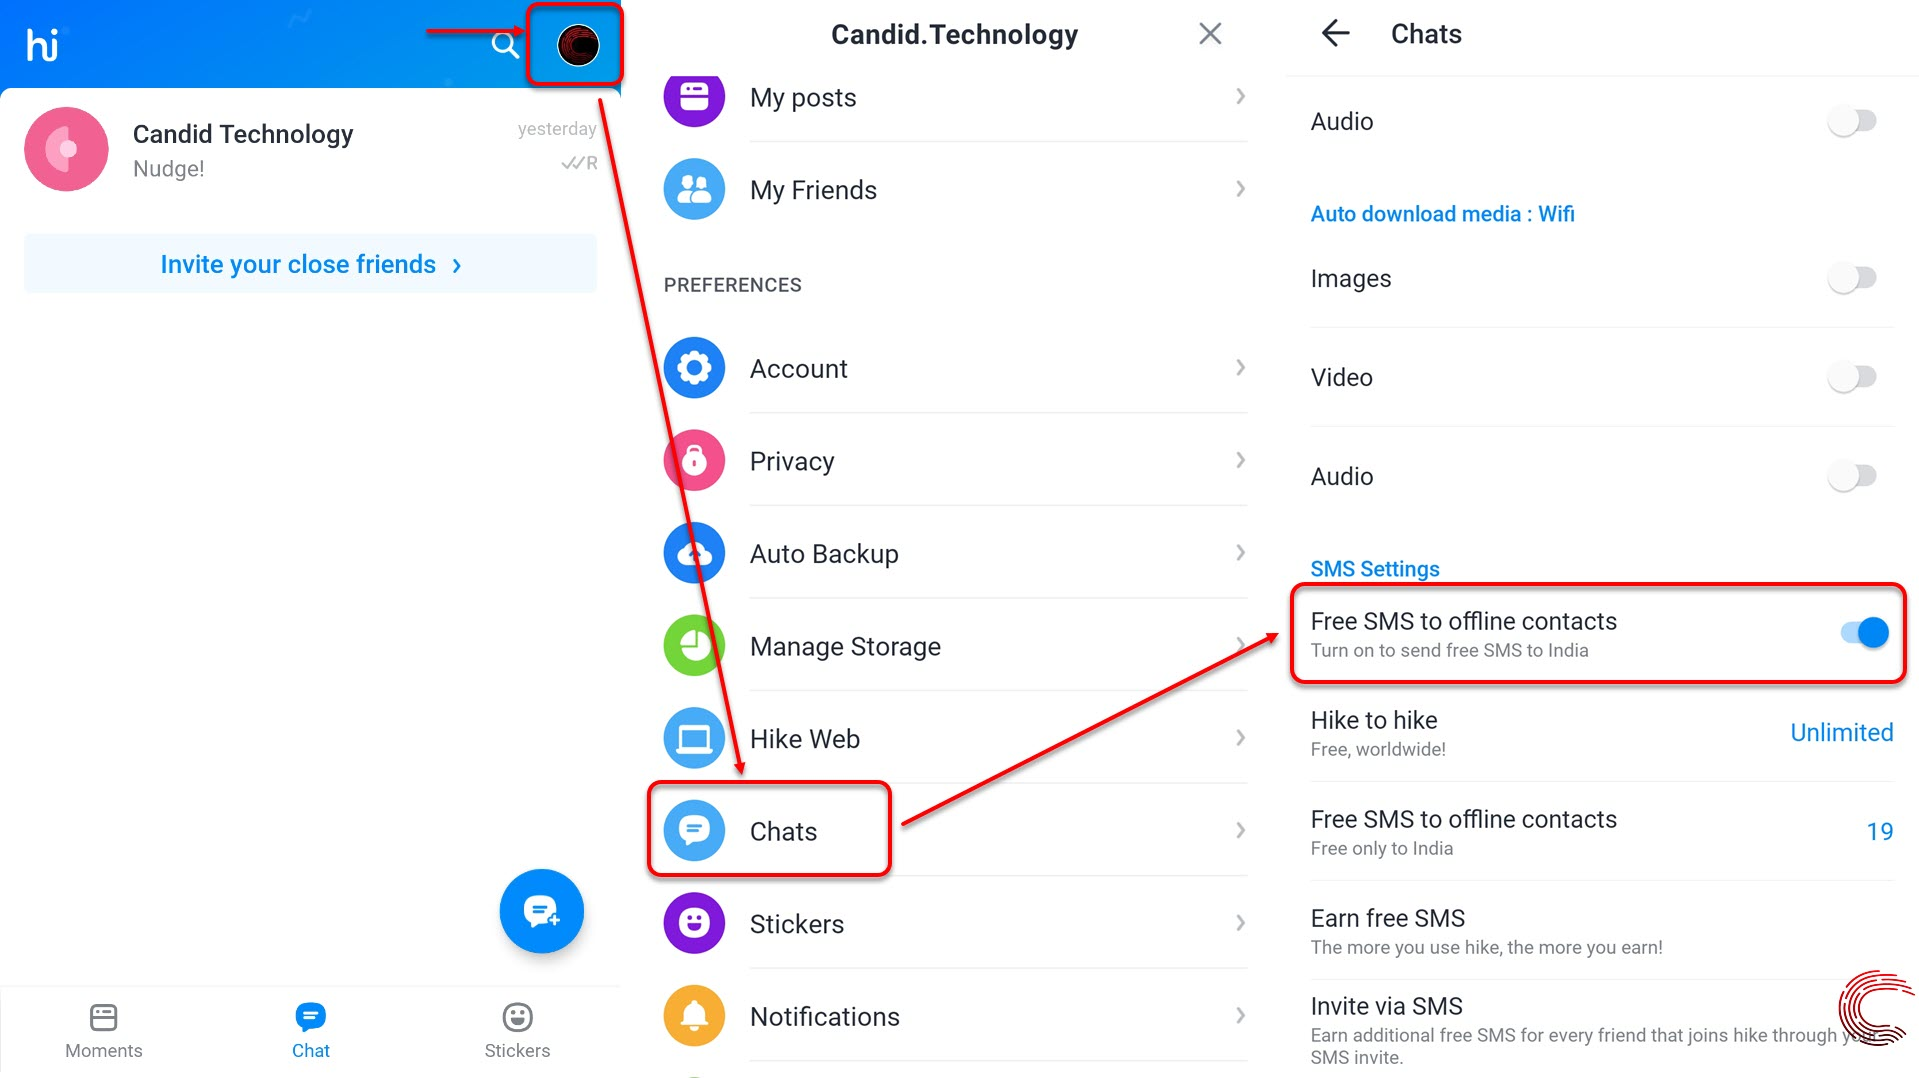 How to send free SMS in Hike? | Candid.Technology